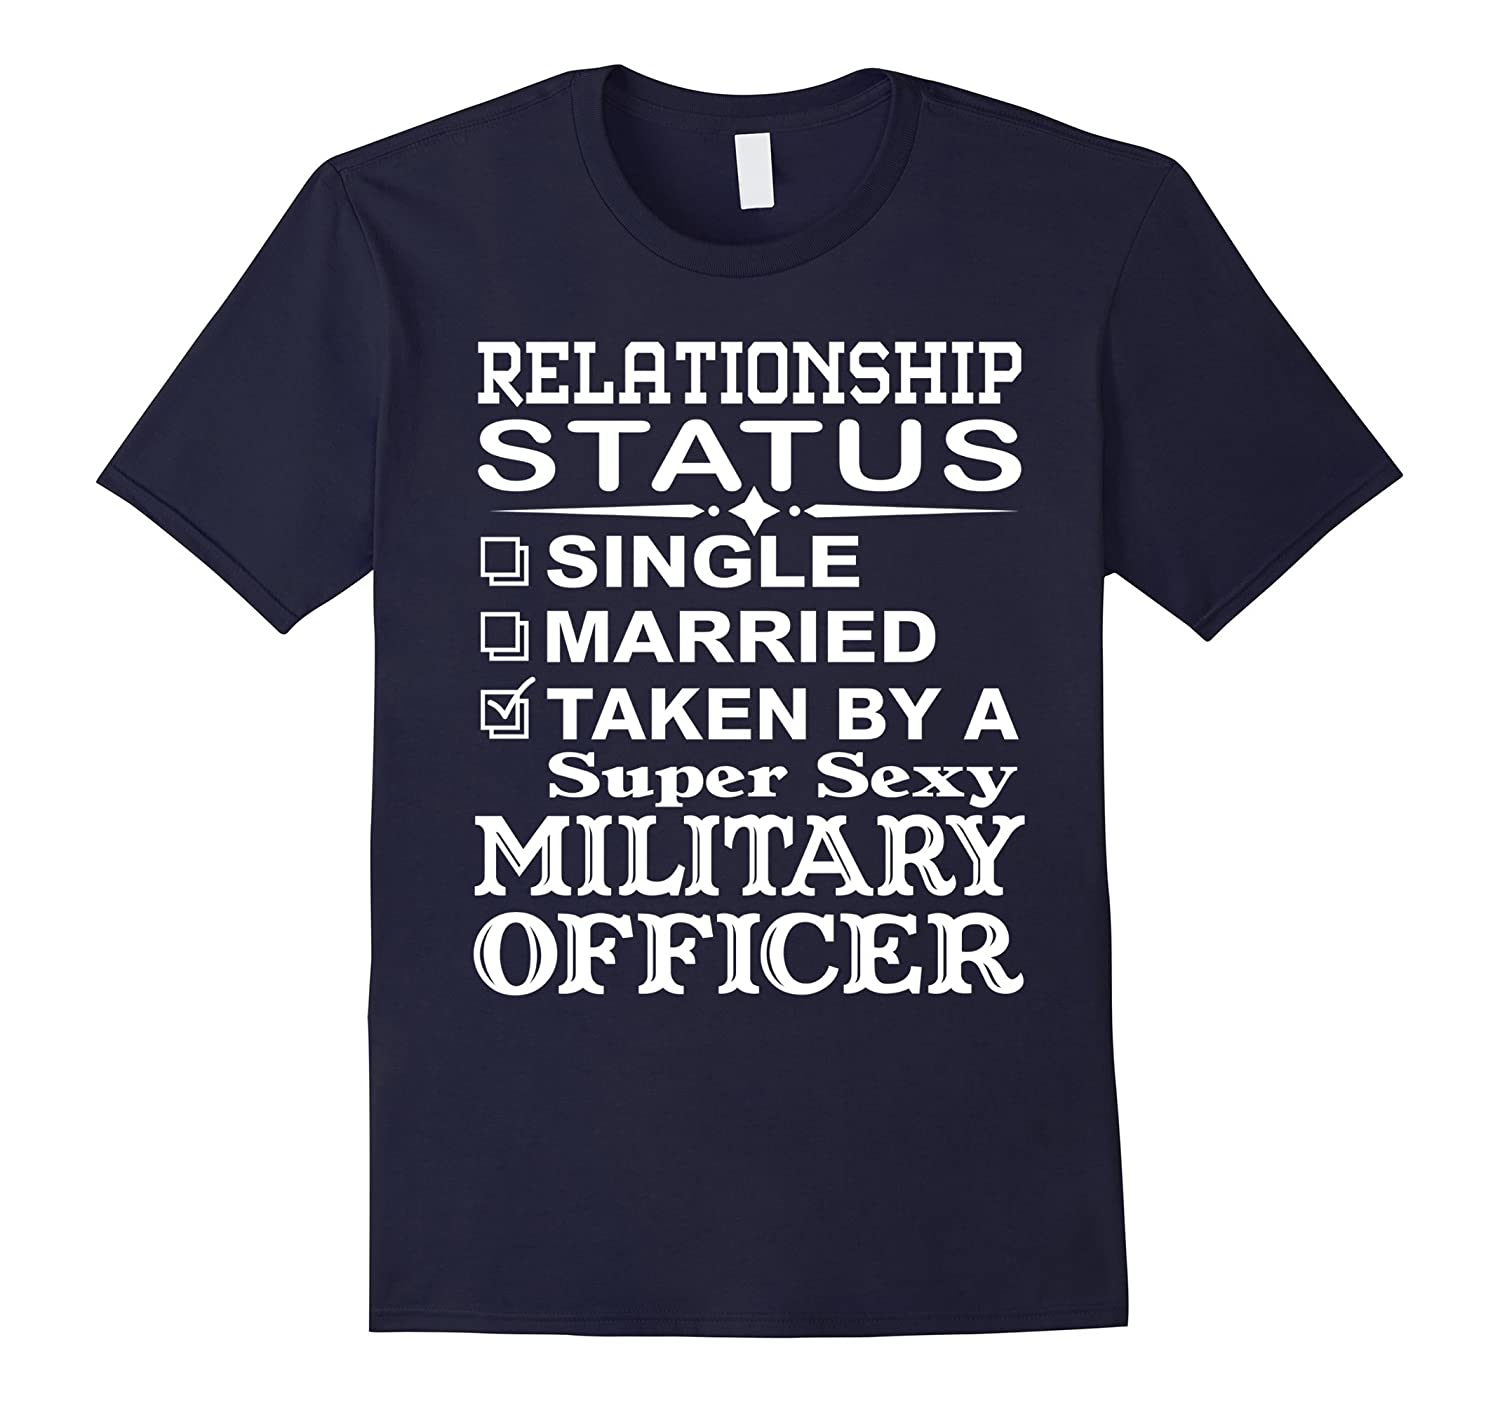 Military Officer Shirt  Military Officer T-Shirt-TJ